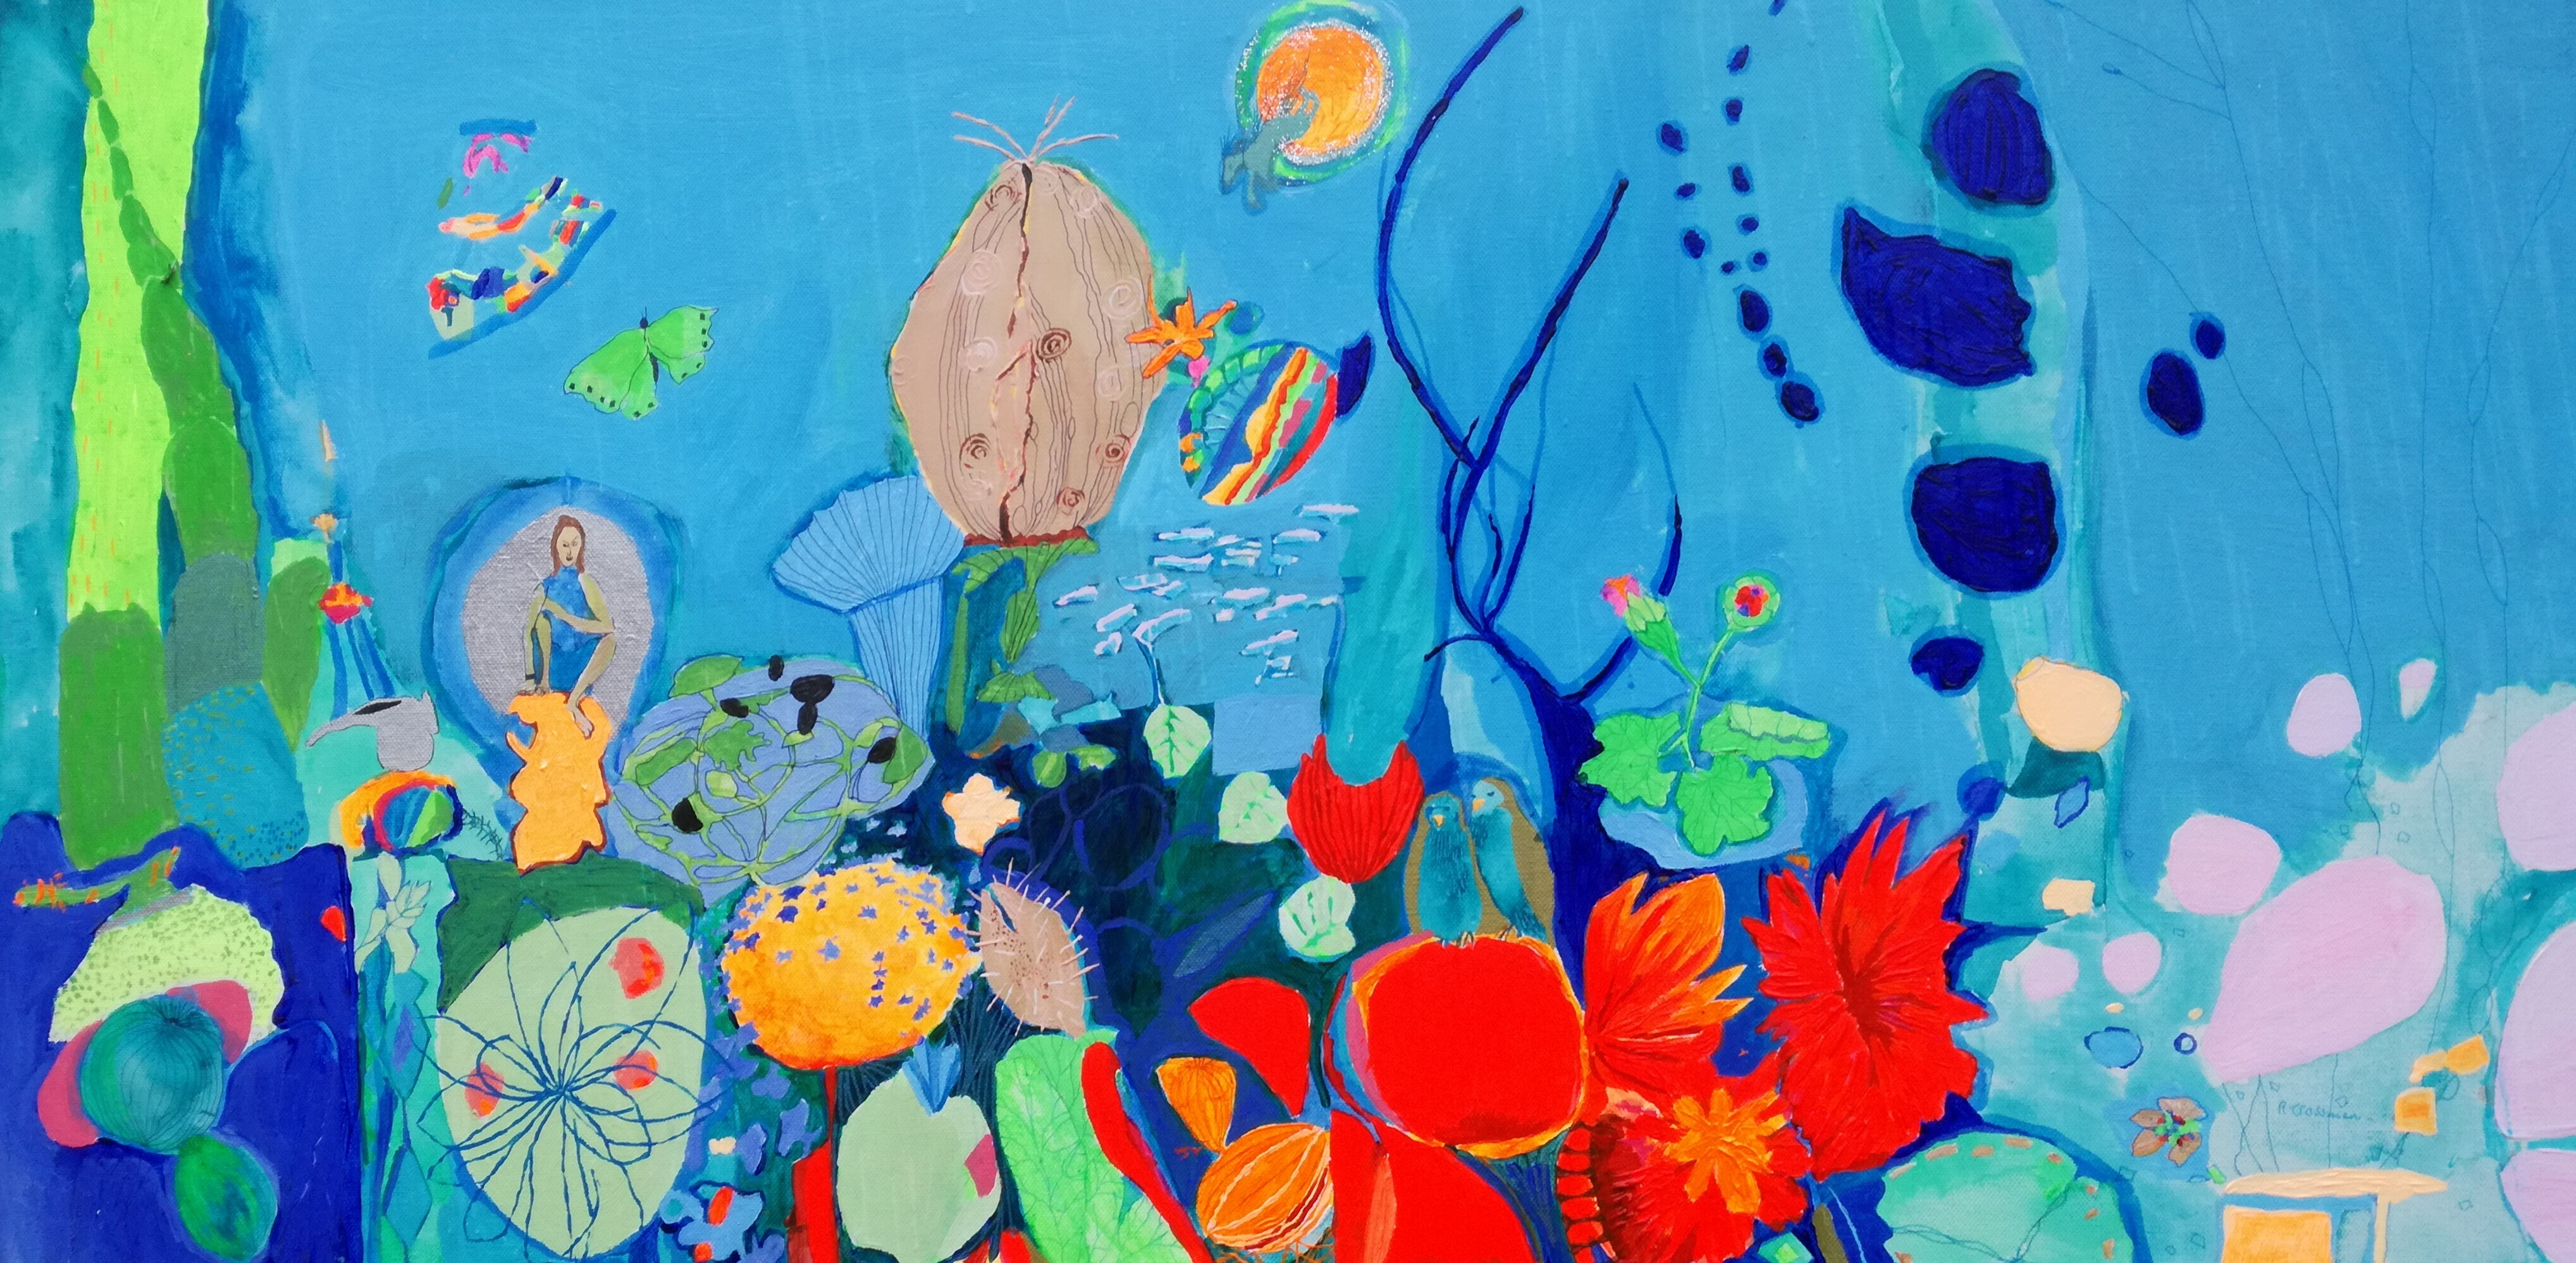 LOITERING AT 3 artwork by REBECCA DE FIGUEIREDO - art listed for sale on Artplode